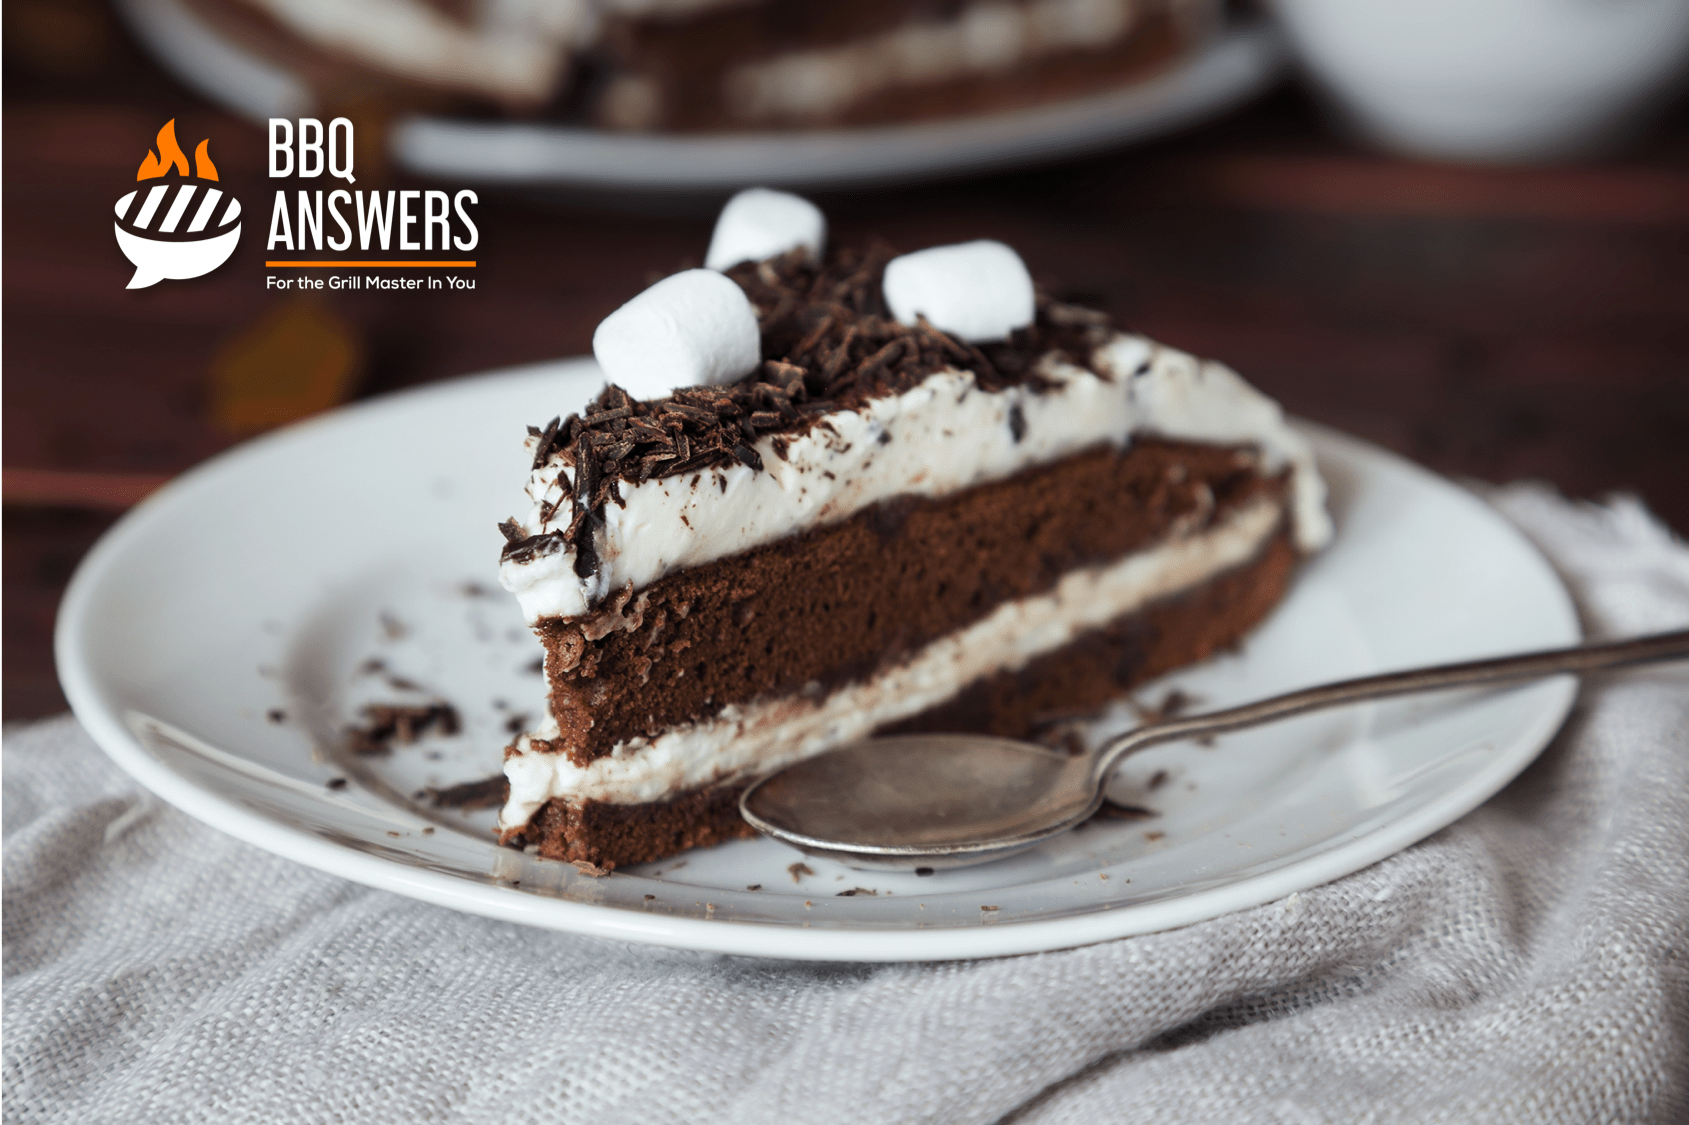 Mississippi Mud Cake | Southern Desserts For BBQ | BBQanswers